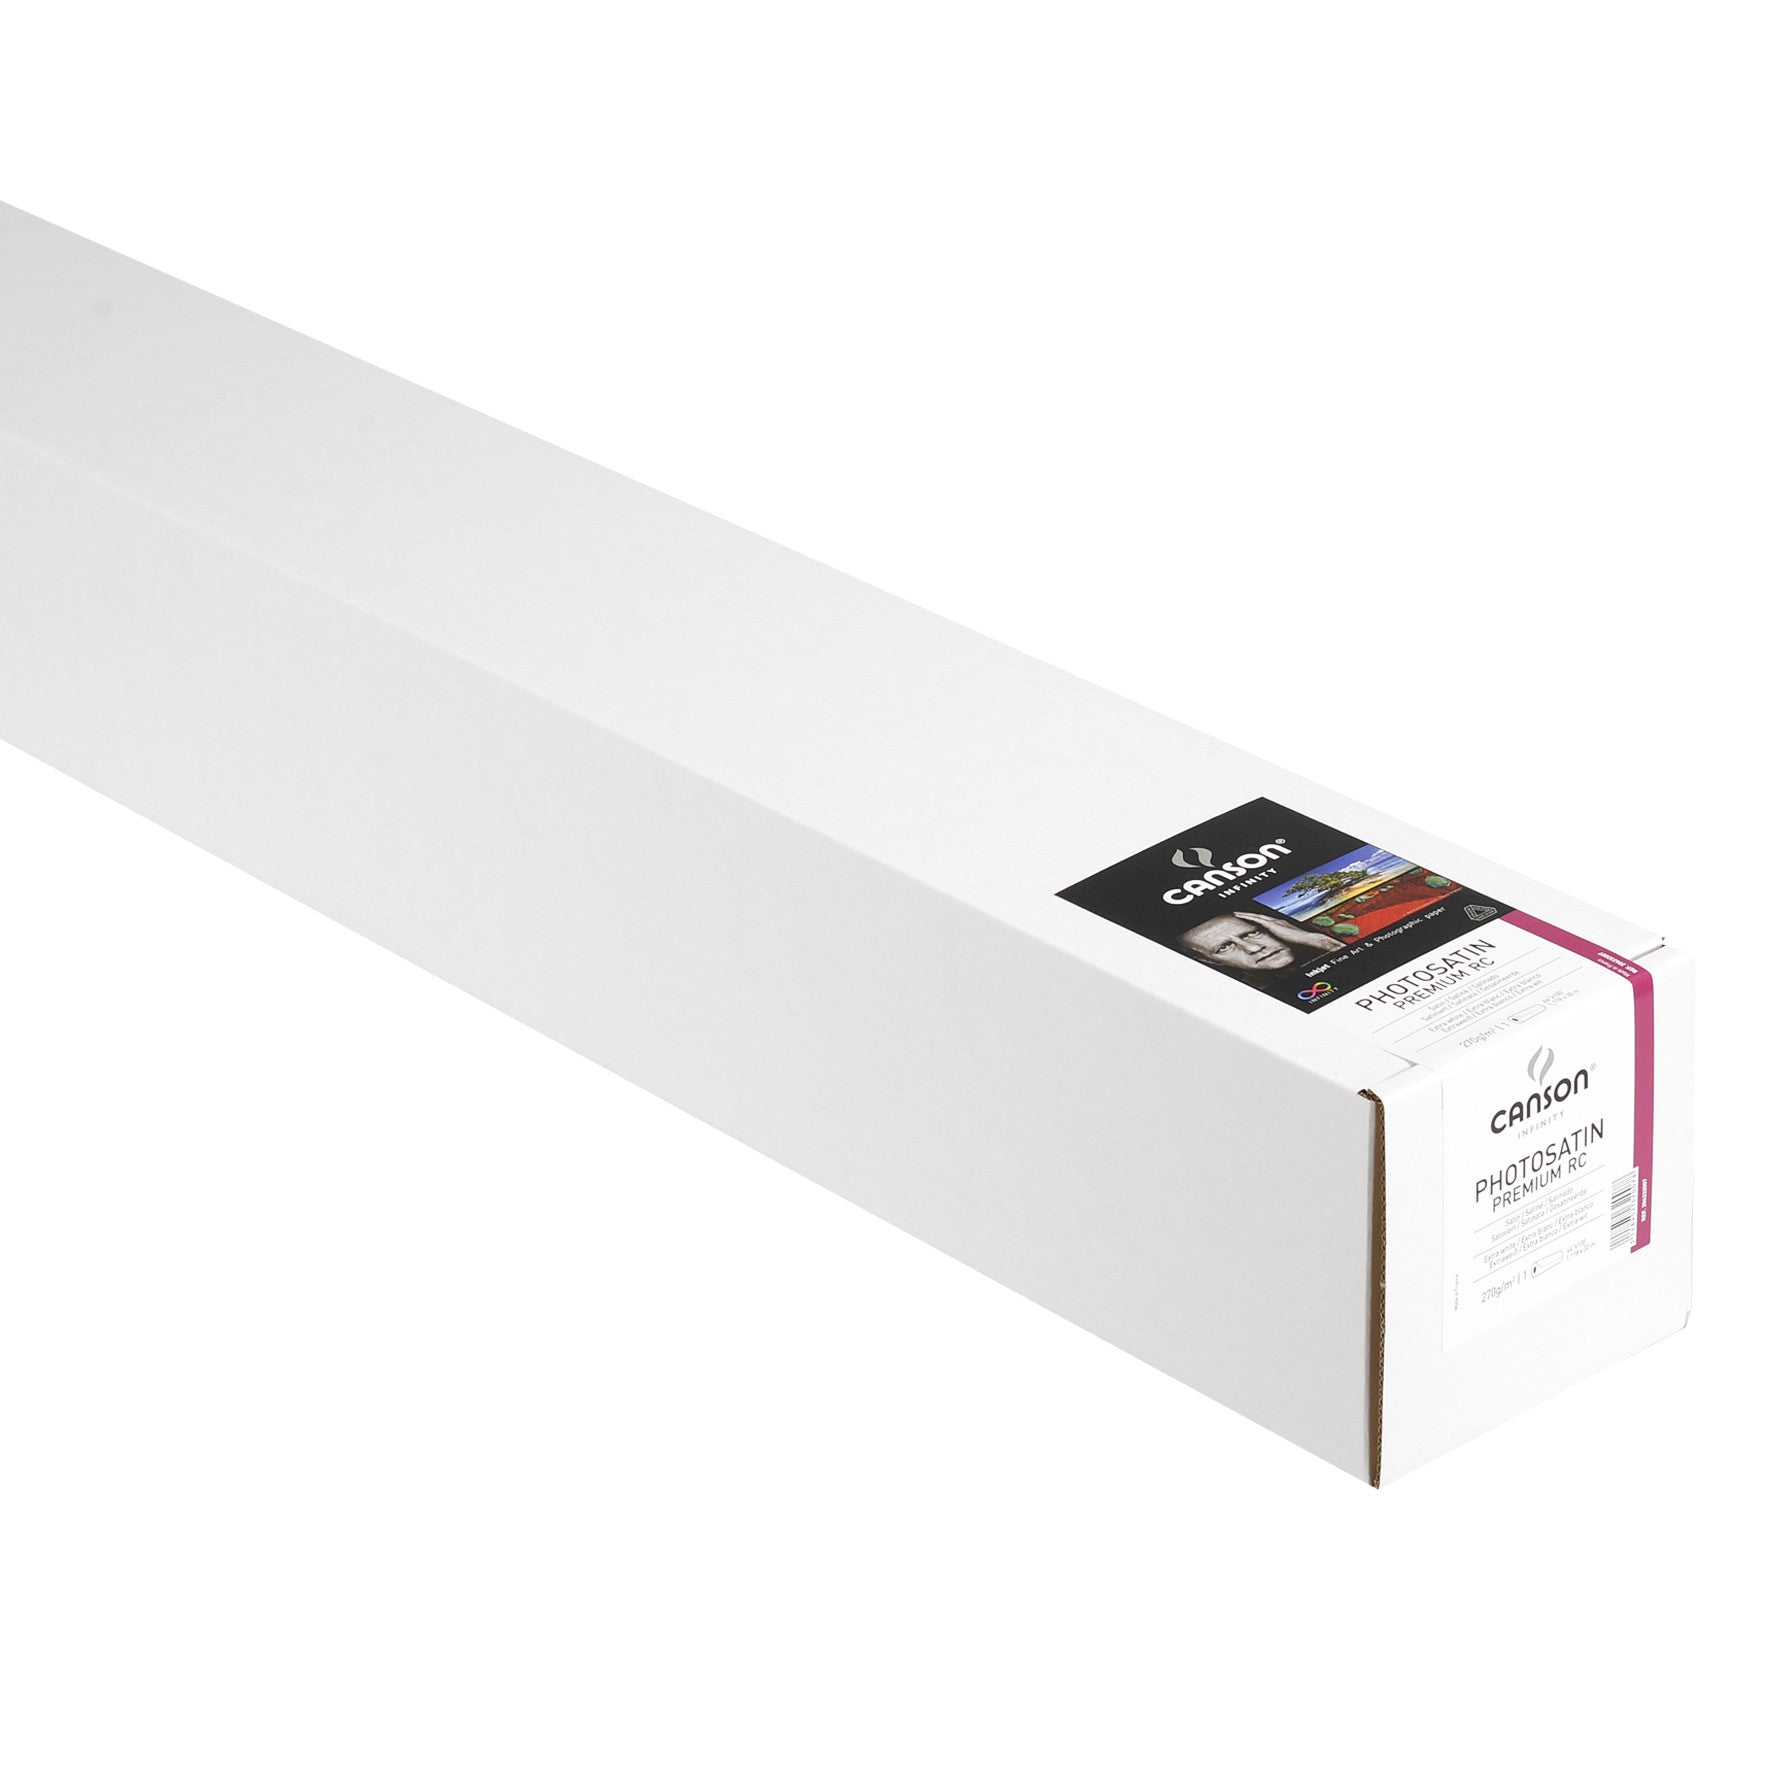 "Canson Infinity Photo Satin Premium RC - 270gsm - 44""x100' roll - Wall Your Photos"